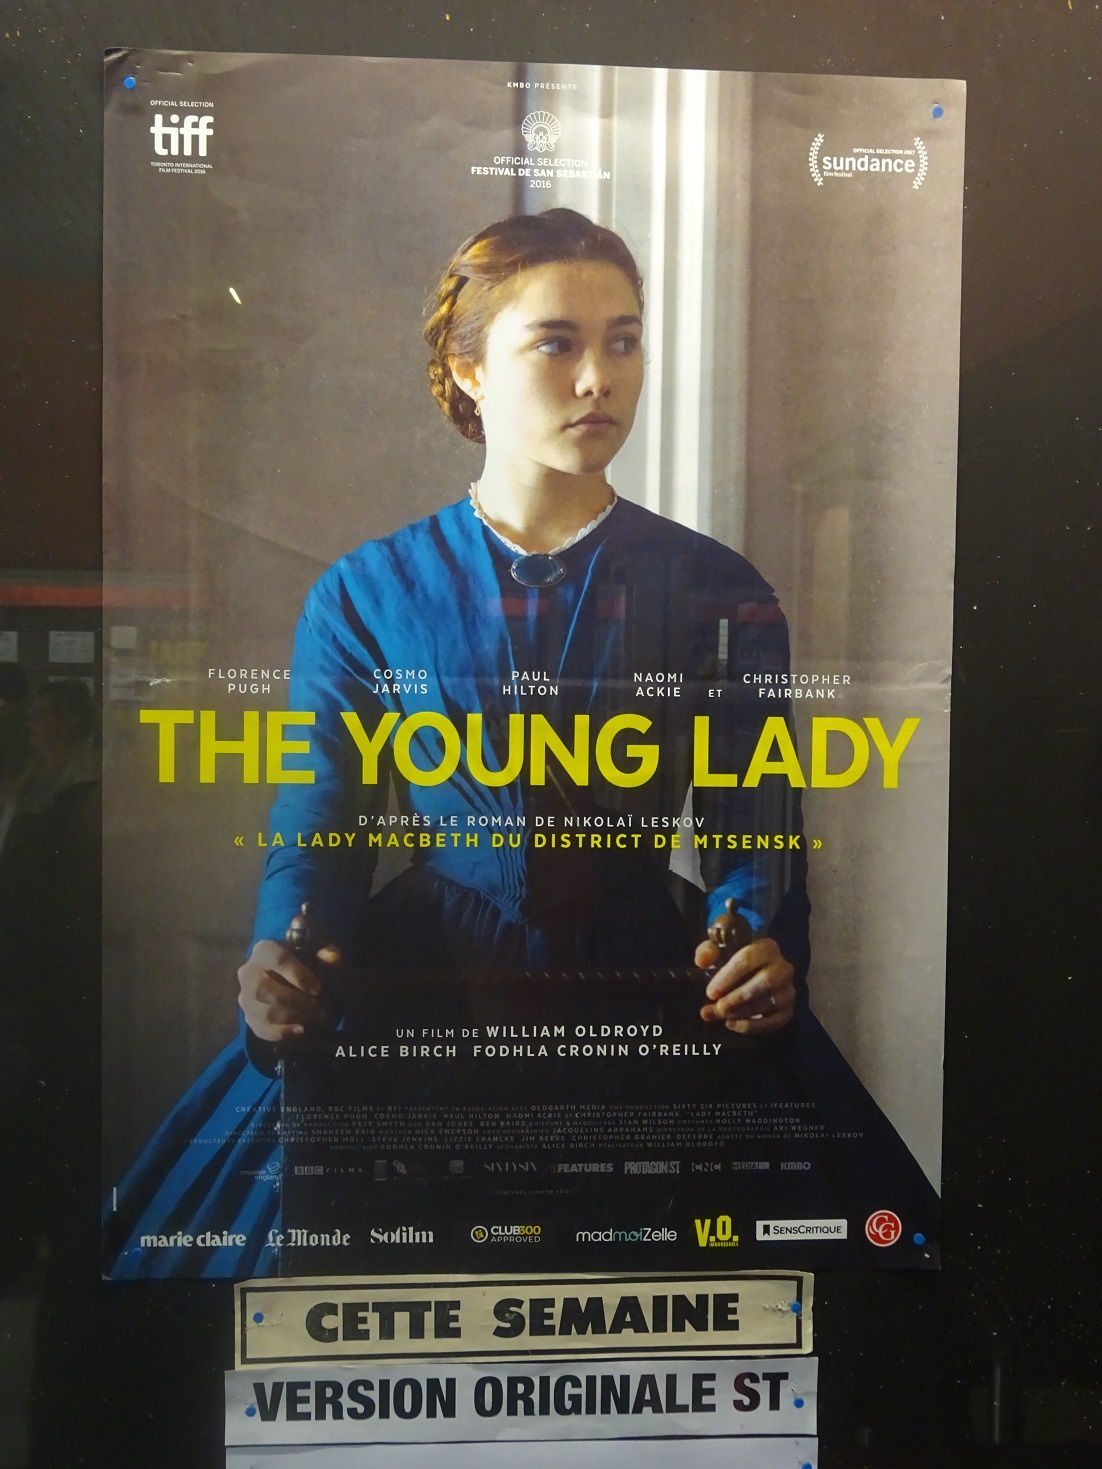 « The young Lady » de William Oldroyd - Cinéma Rialto - Nice ©Théodore Charles/un-culte-d-art.overblog.com